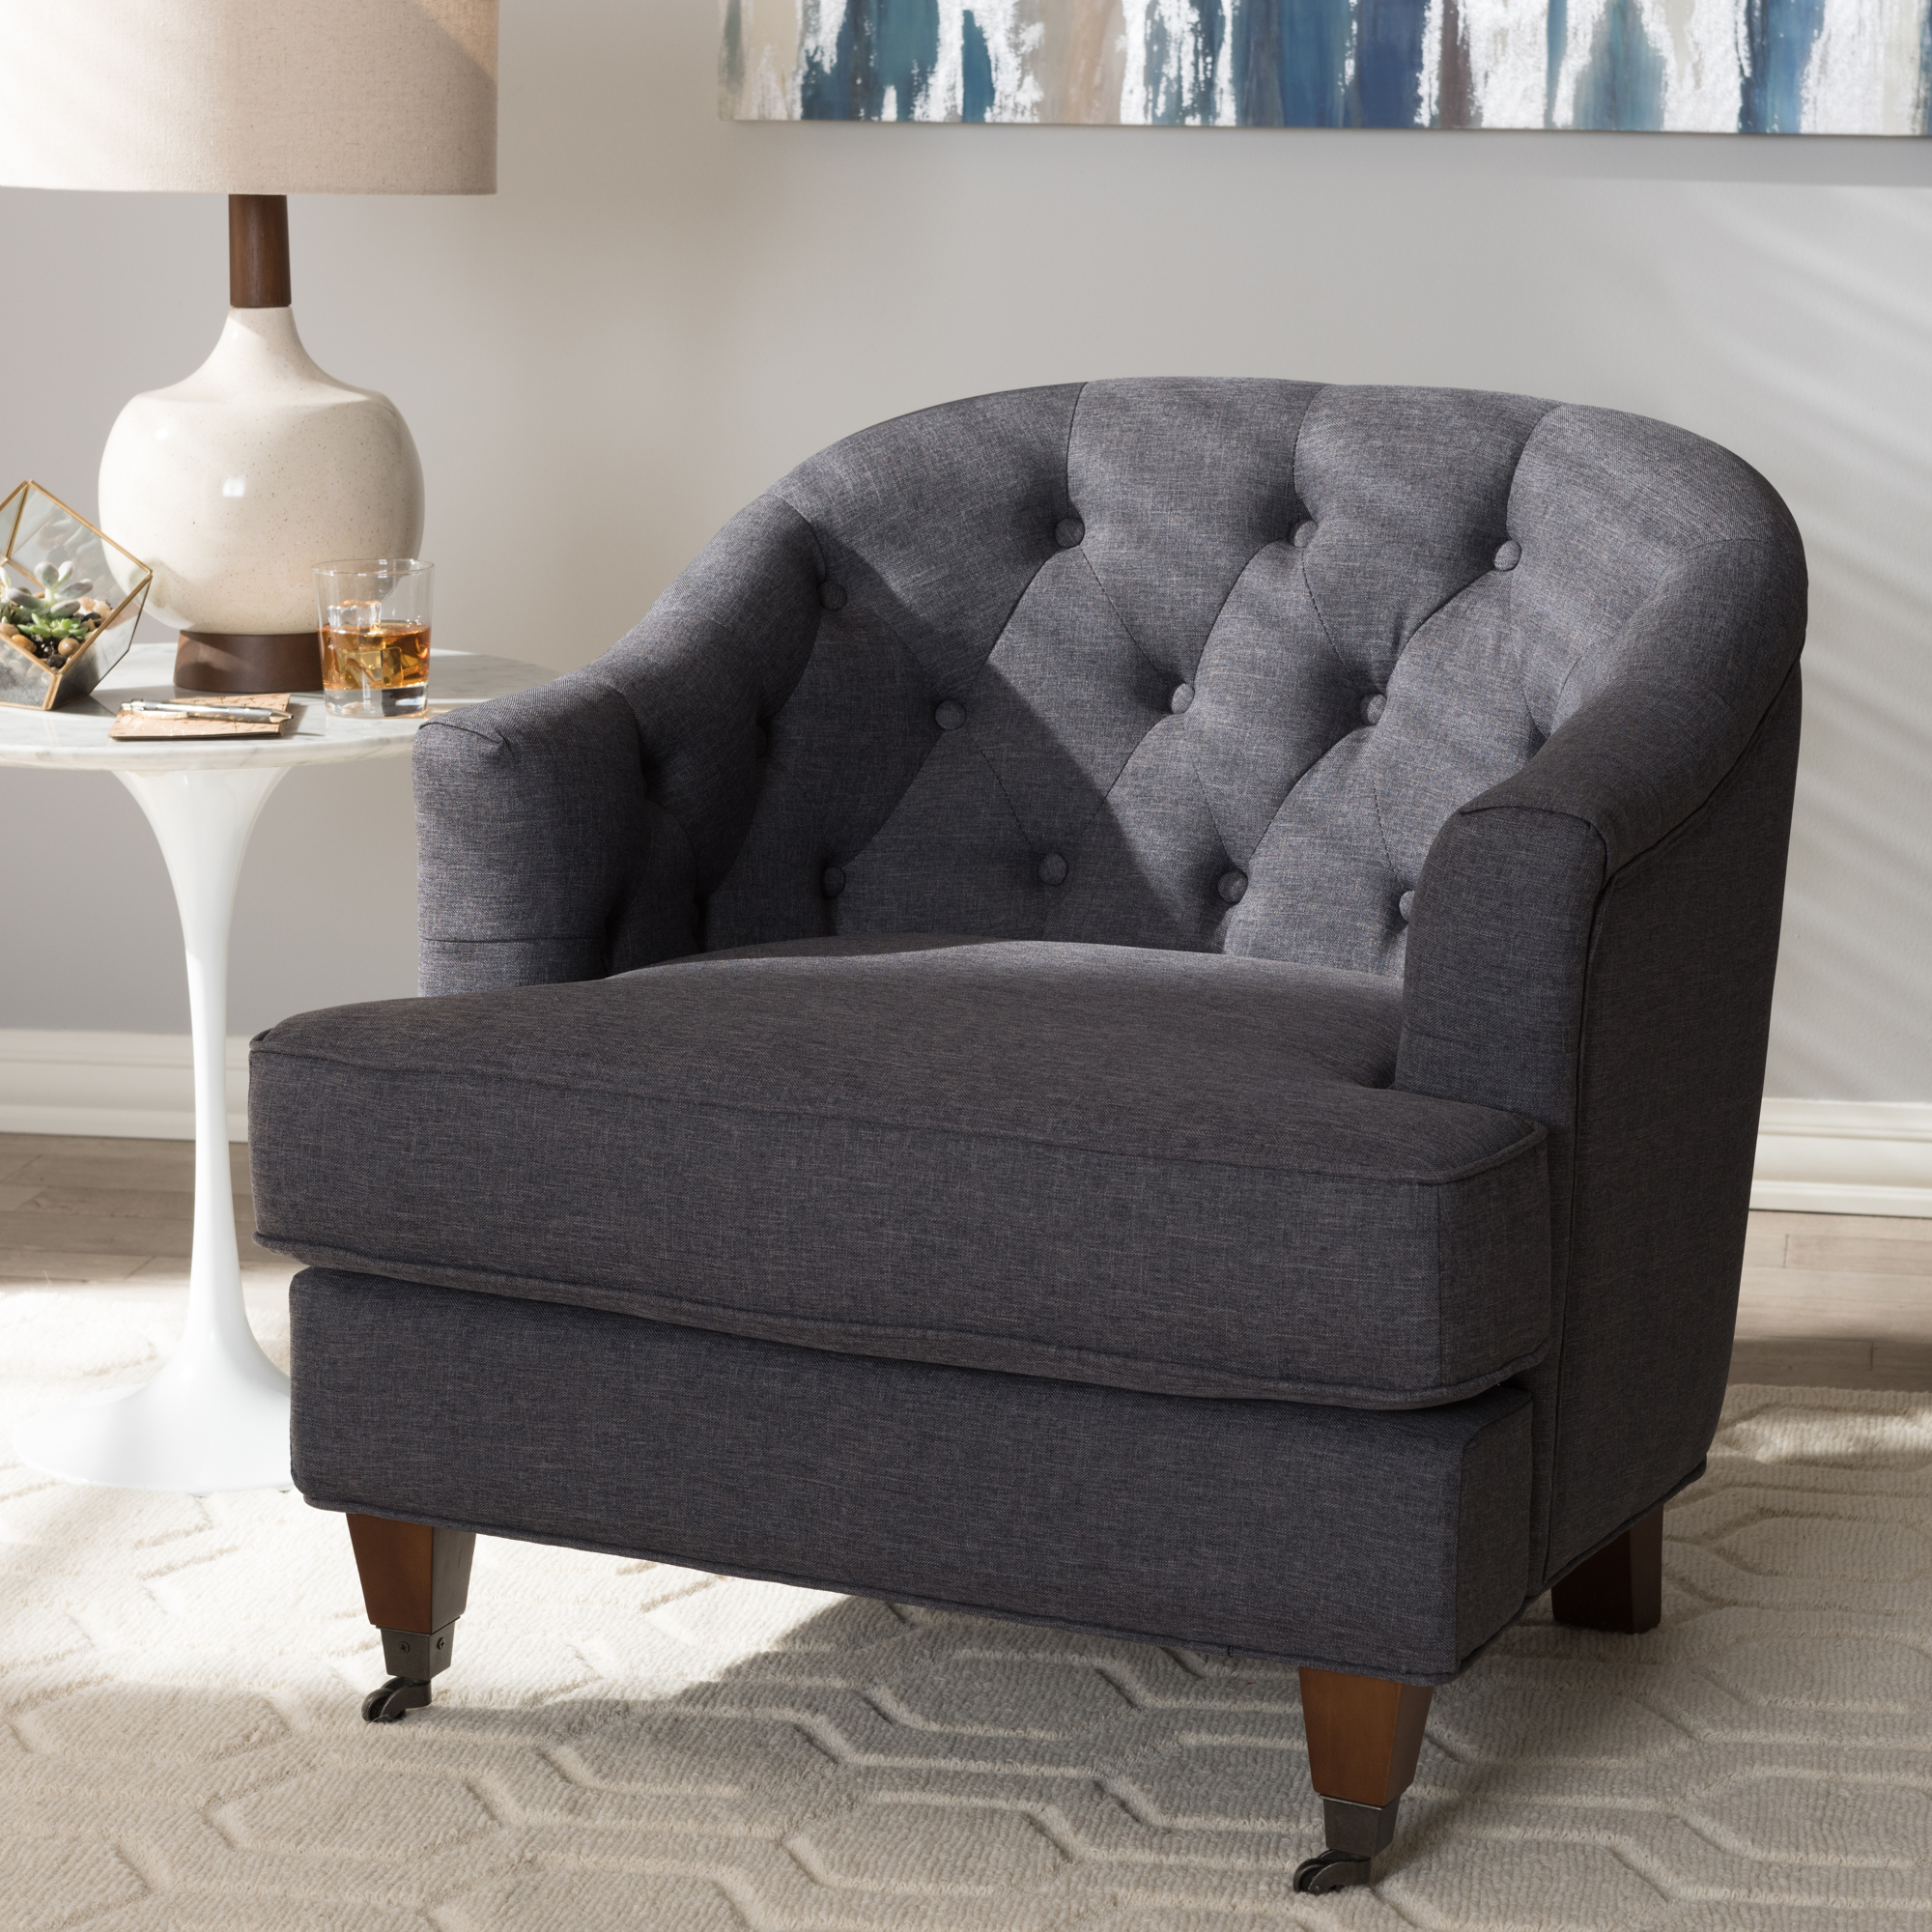 ... Baxton Studio Jilian Modern And Contemporary Dark Grey Fabric  Upholstered Walnut Wood Button Tufted Armchair ...